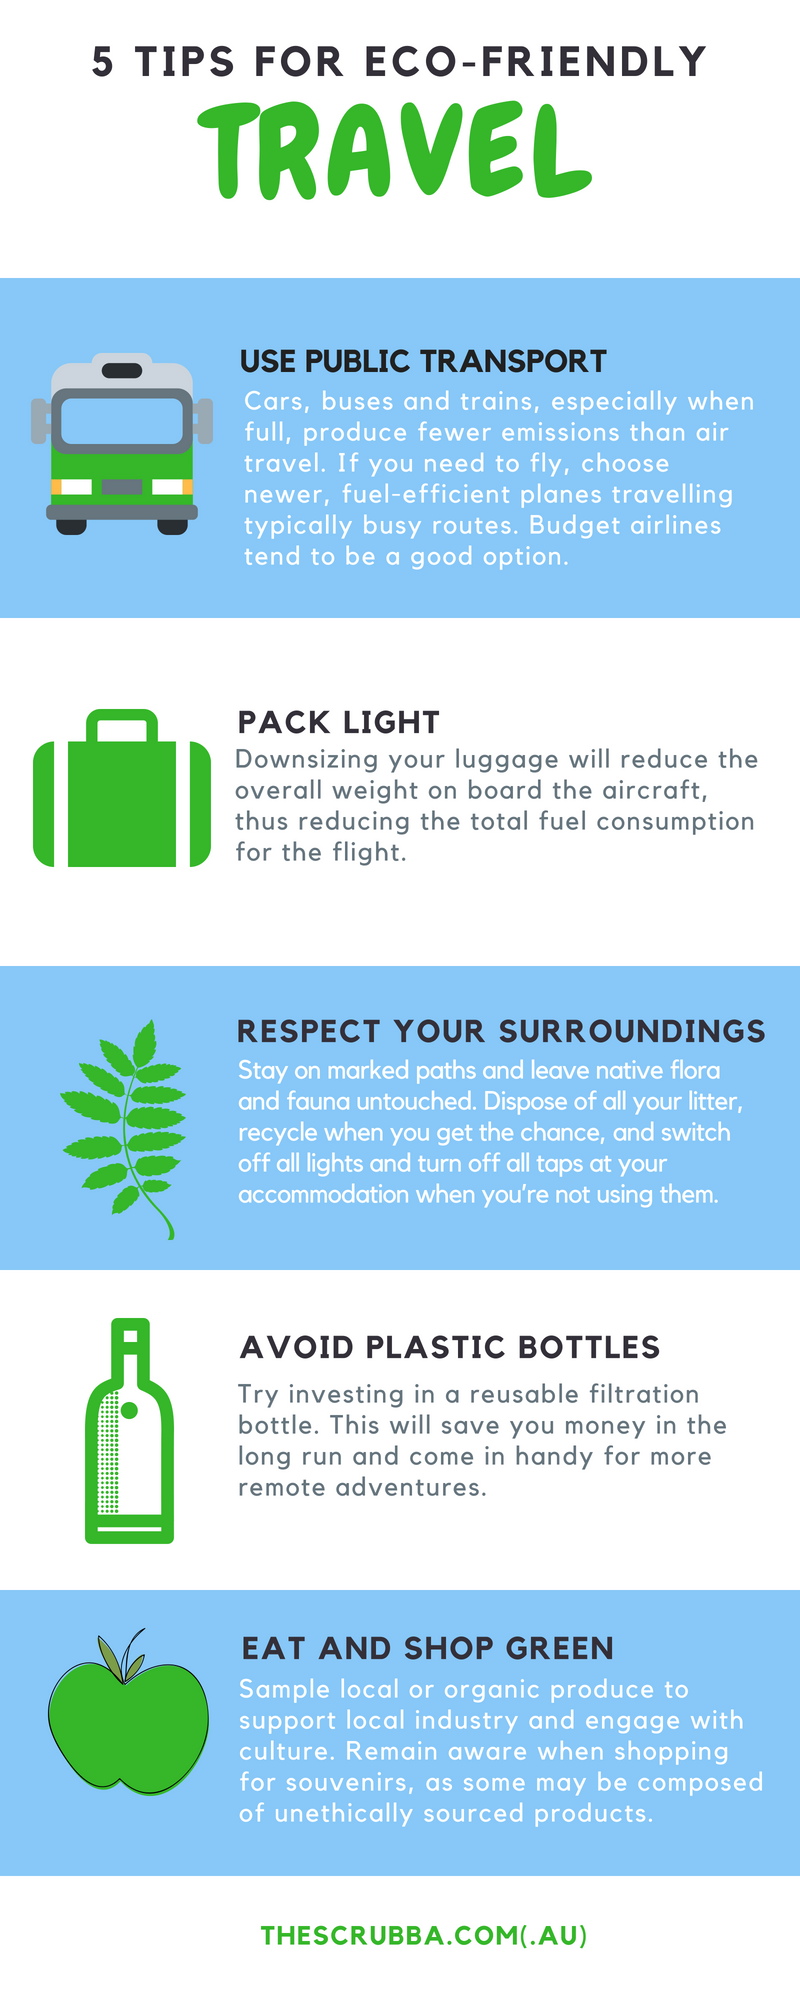 Tips for eco-friendly travel infographic